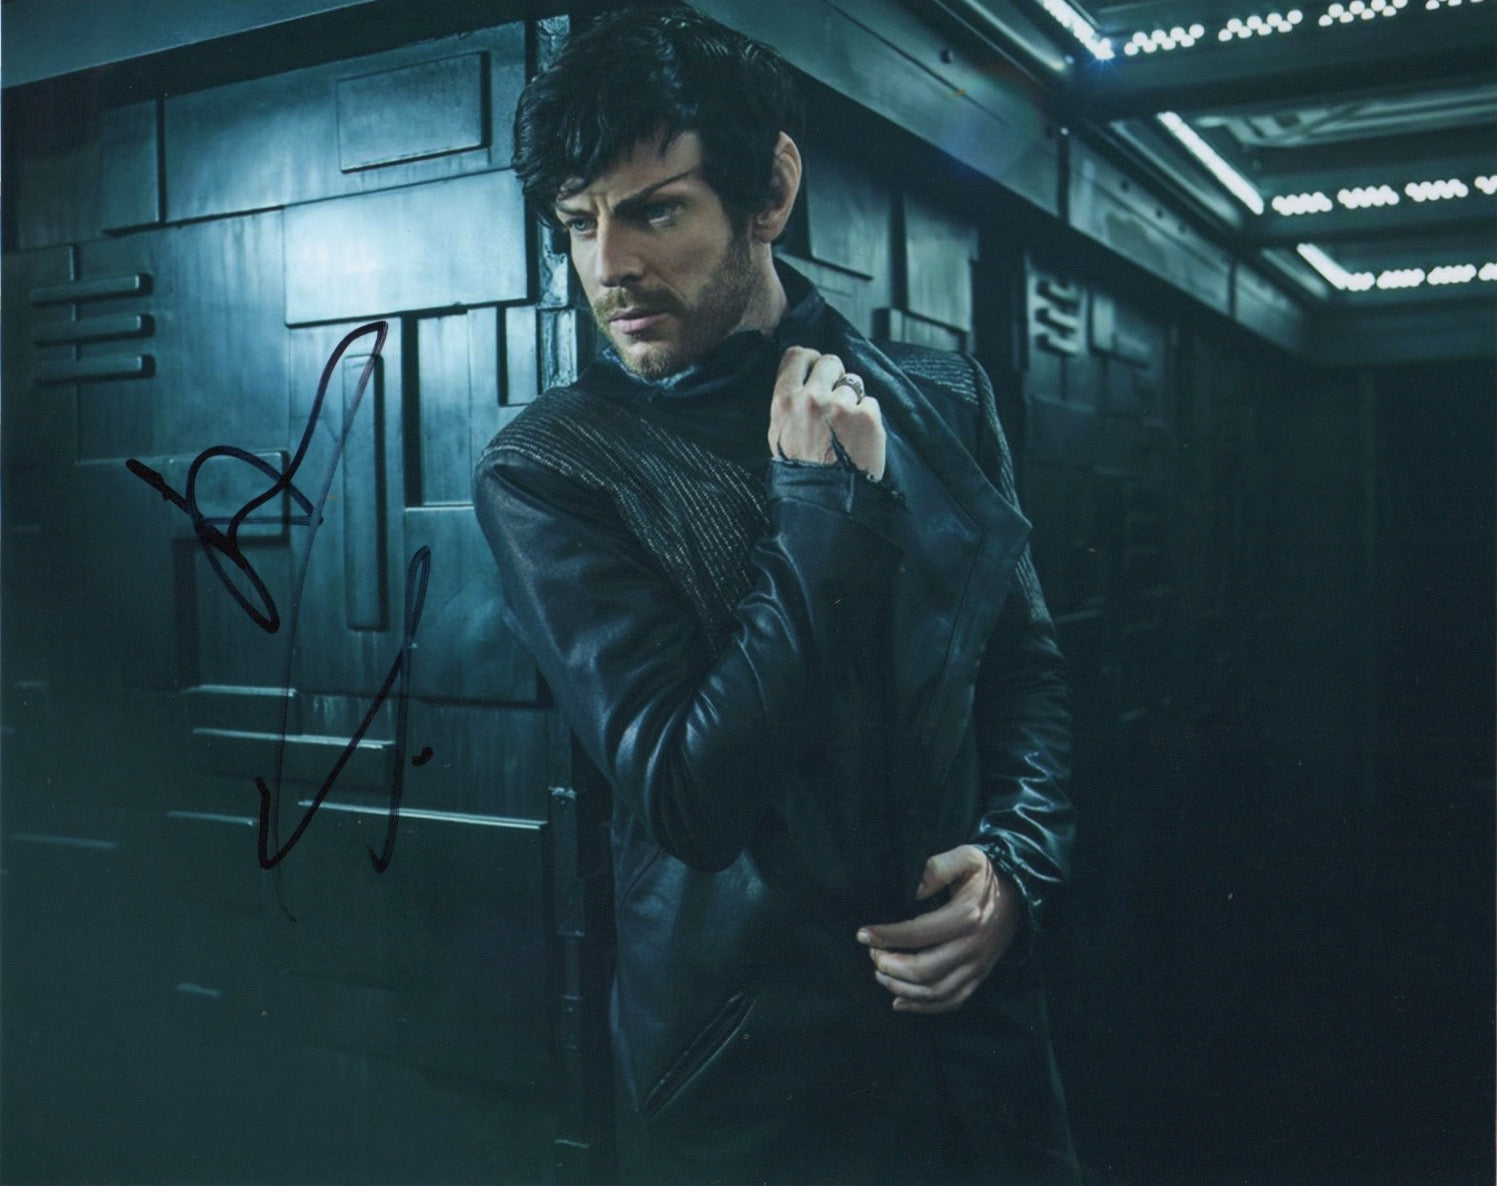 Harry Treadaway Picard Star Trek Signed Autograph 8x10 Photo #3